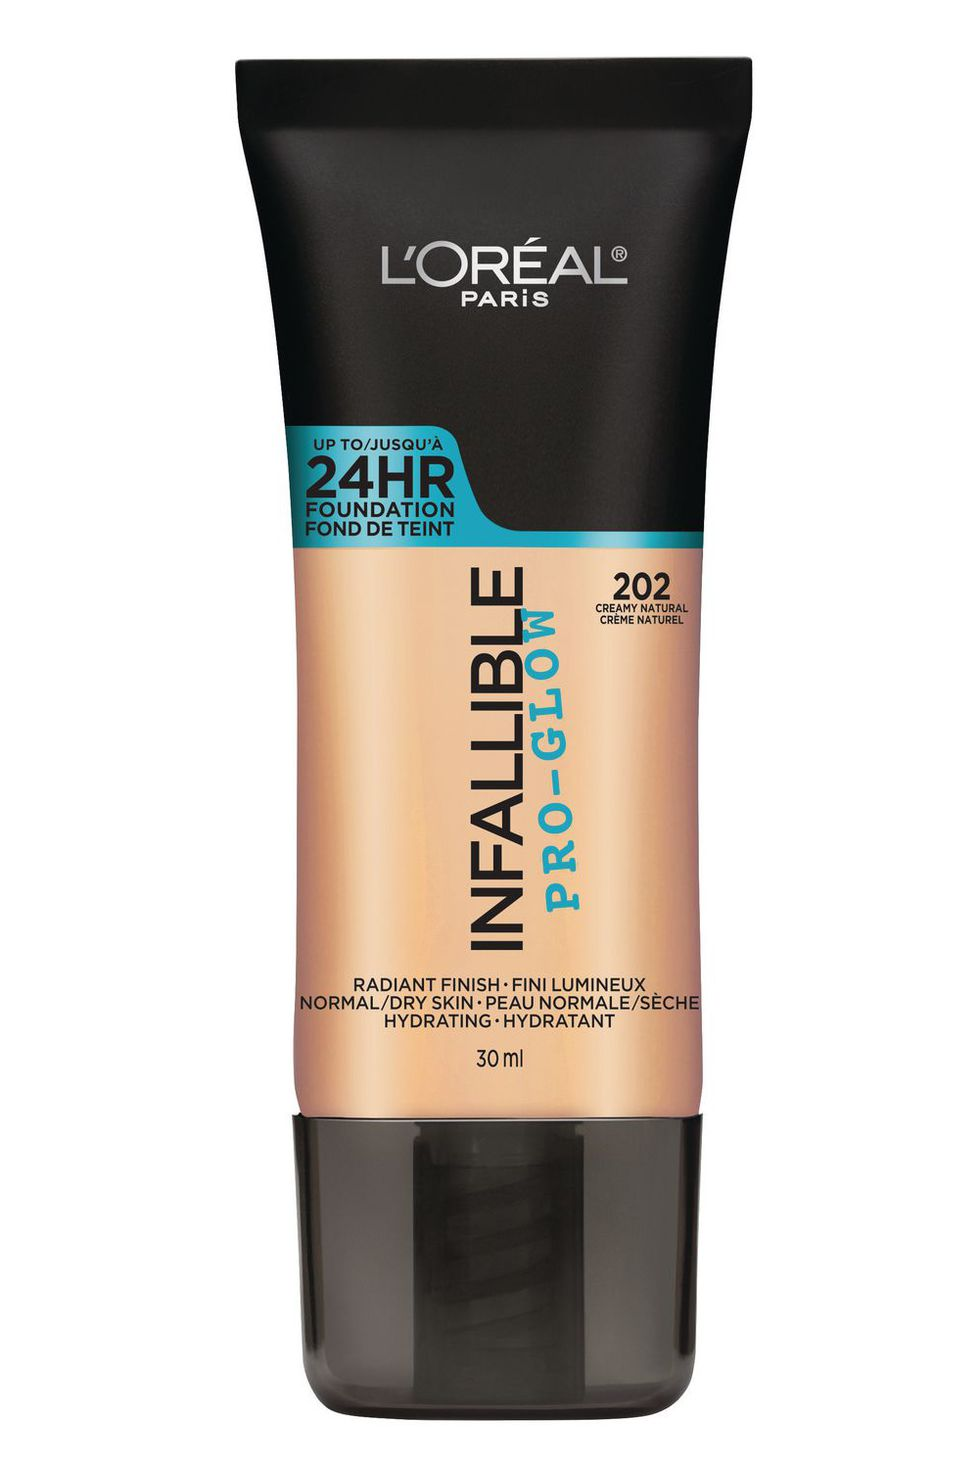 L'Oréal Paris Infallible Pro Glow Longwear Foundation